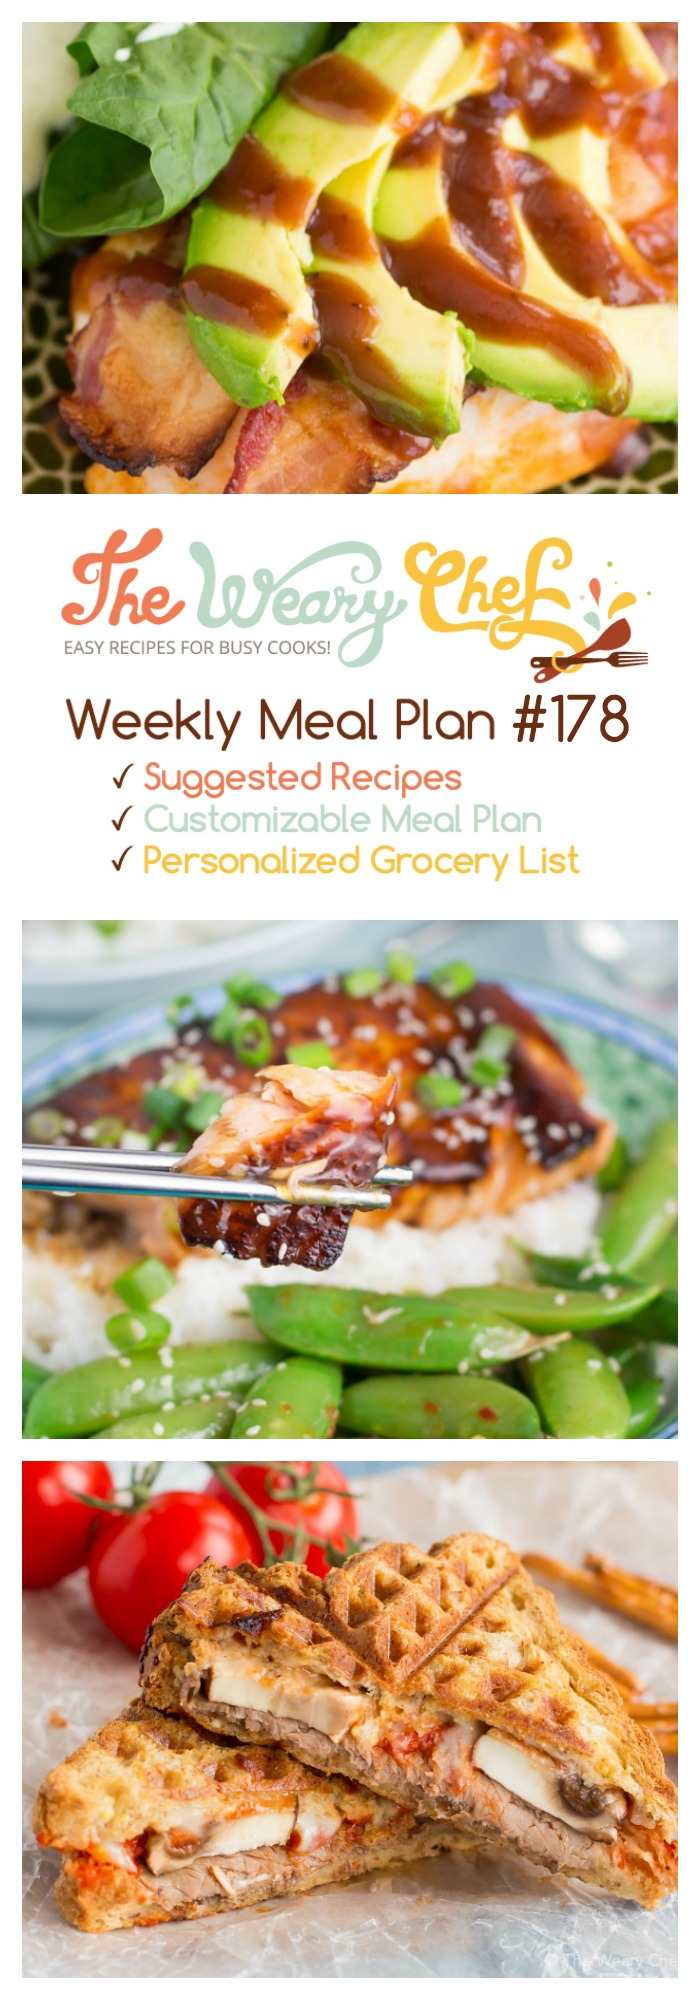 Cooking for Two: Easy Weekly Dinner Menu #178 - The Weary Chef